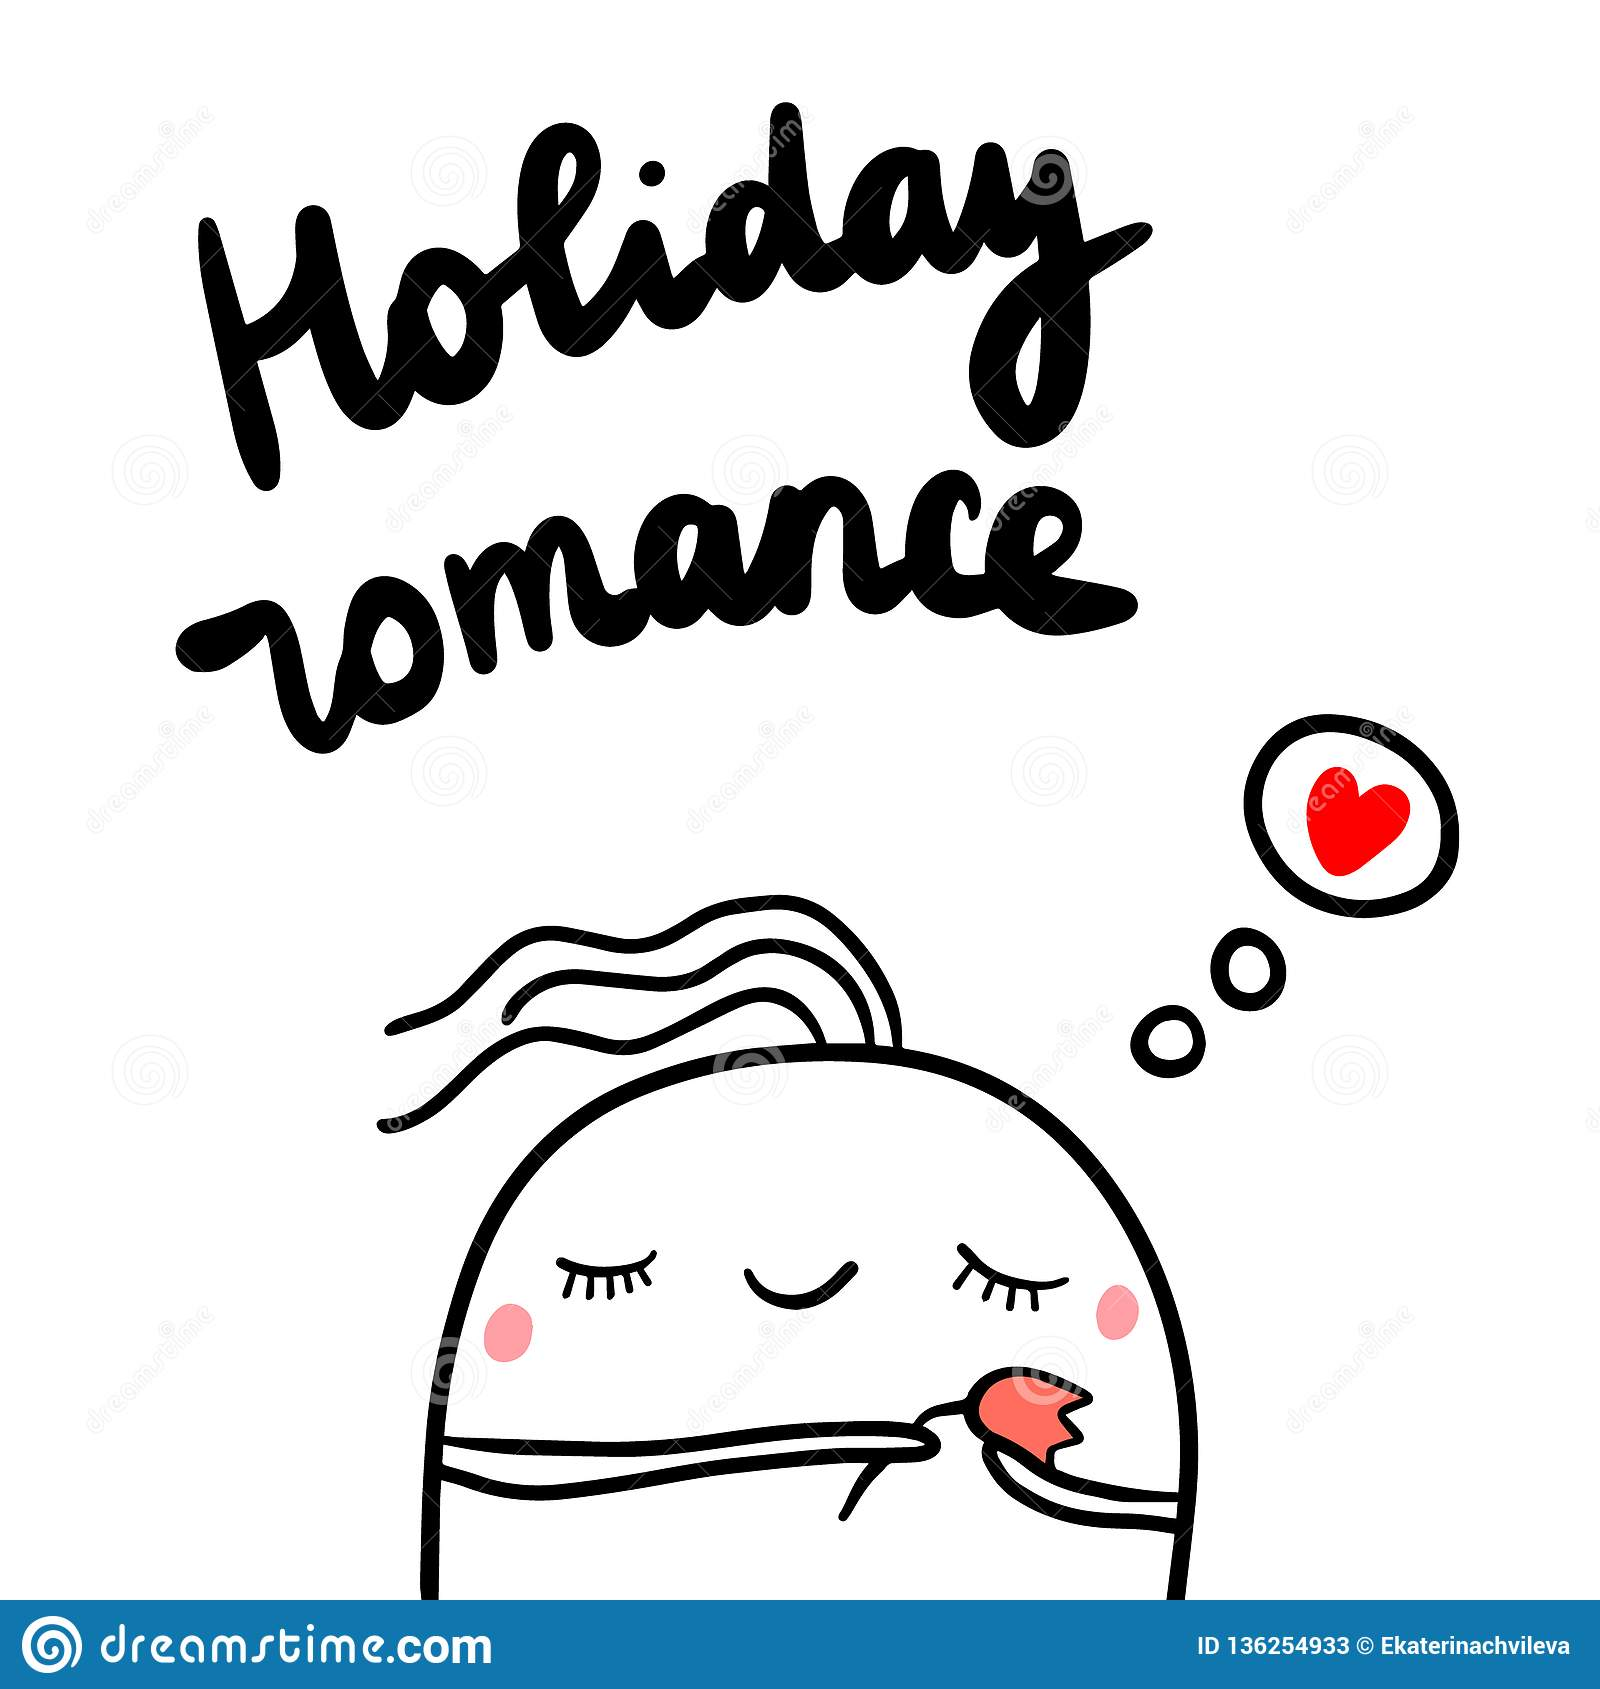 Holiday romance hand drawn illustration with cute marshmallow holding tulip